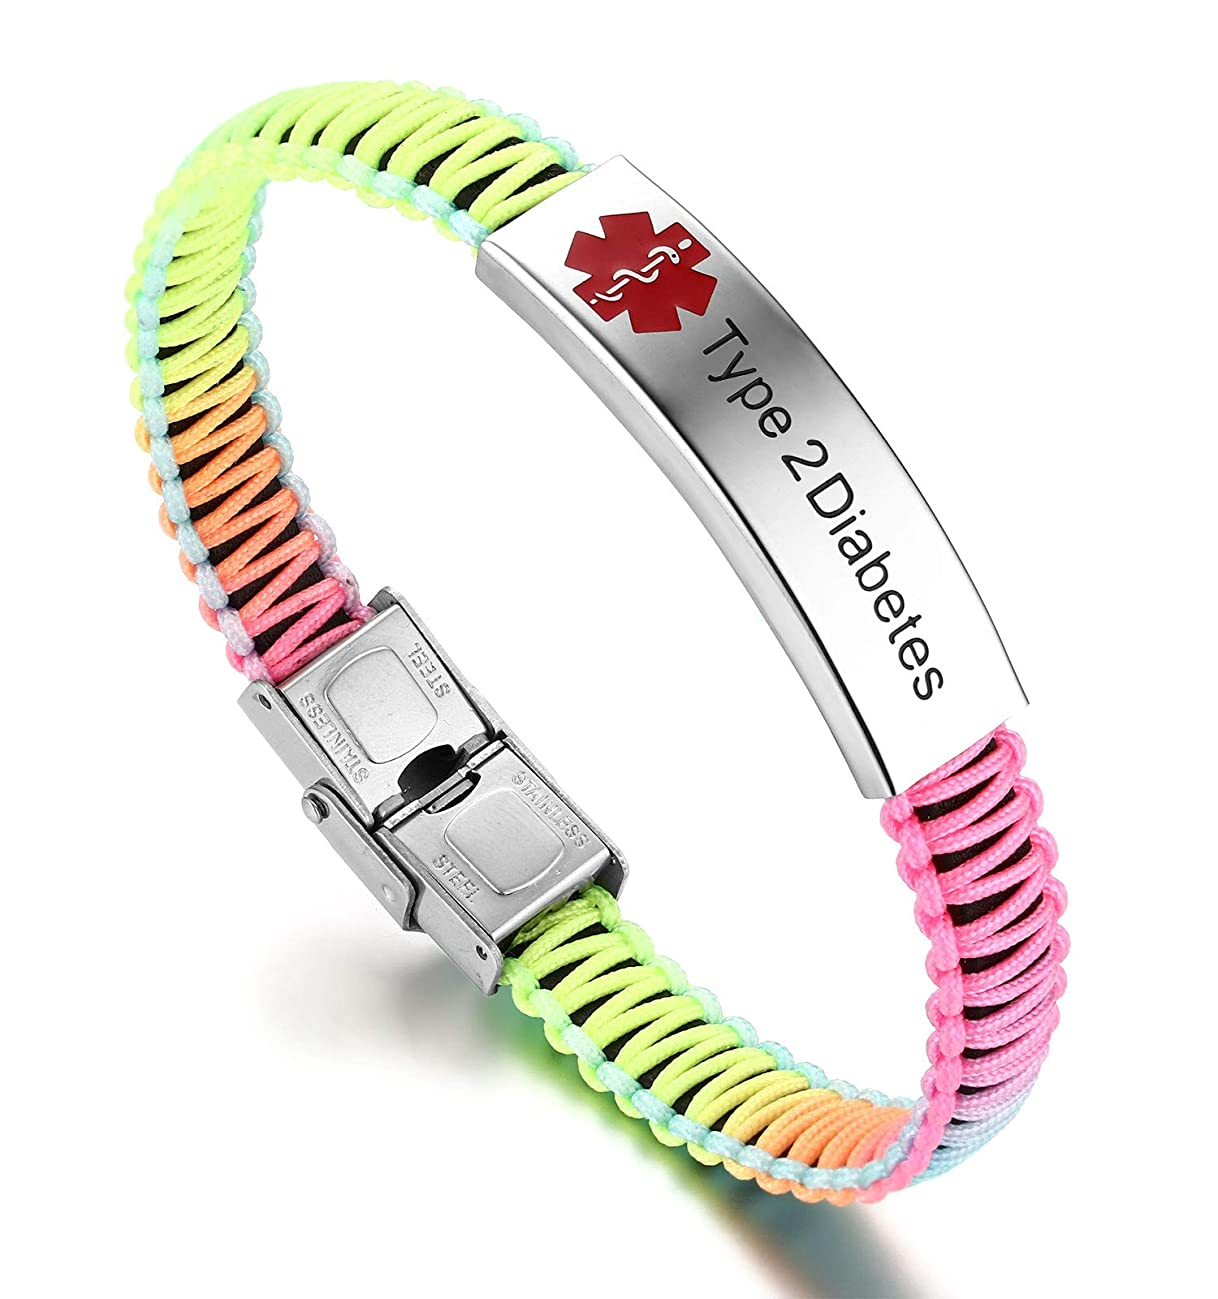 JF.JEWELRY Type 2 Diabetes Medical ID Alert Bracelet for Women Rainbow Nylon Braid Bracelet Adjustable